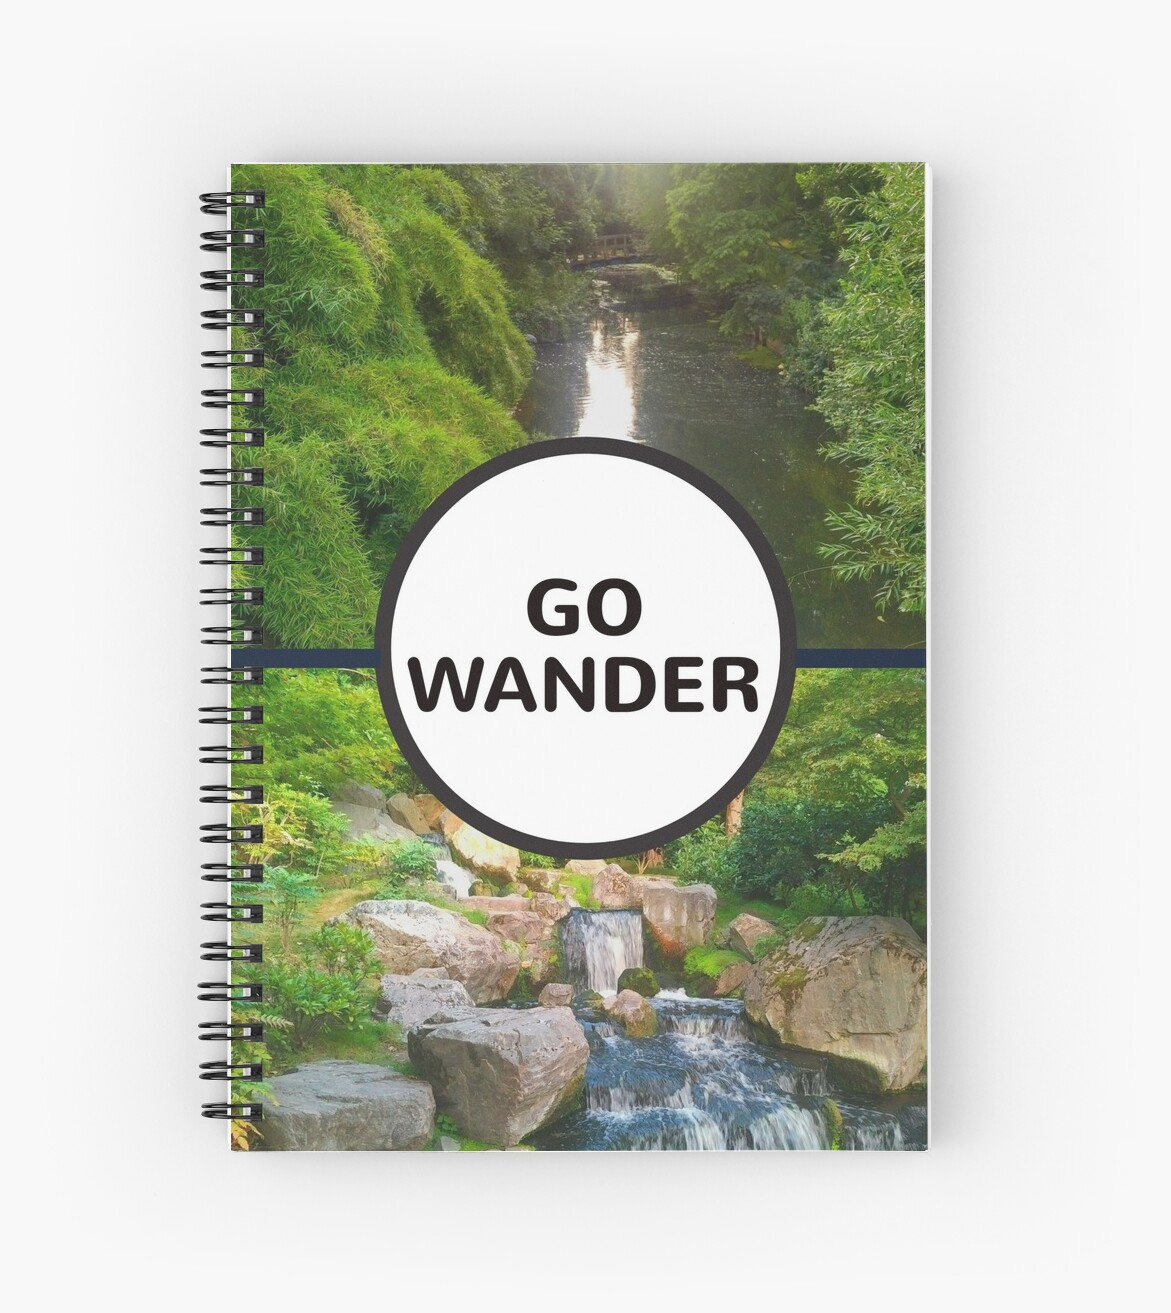 GO WANDER by BrightNomad